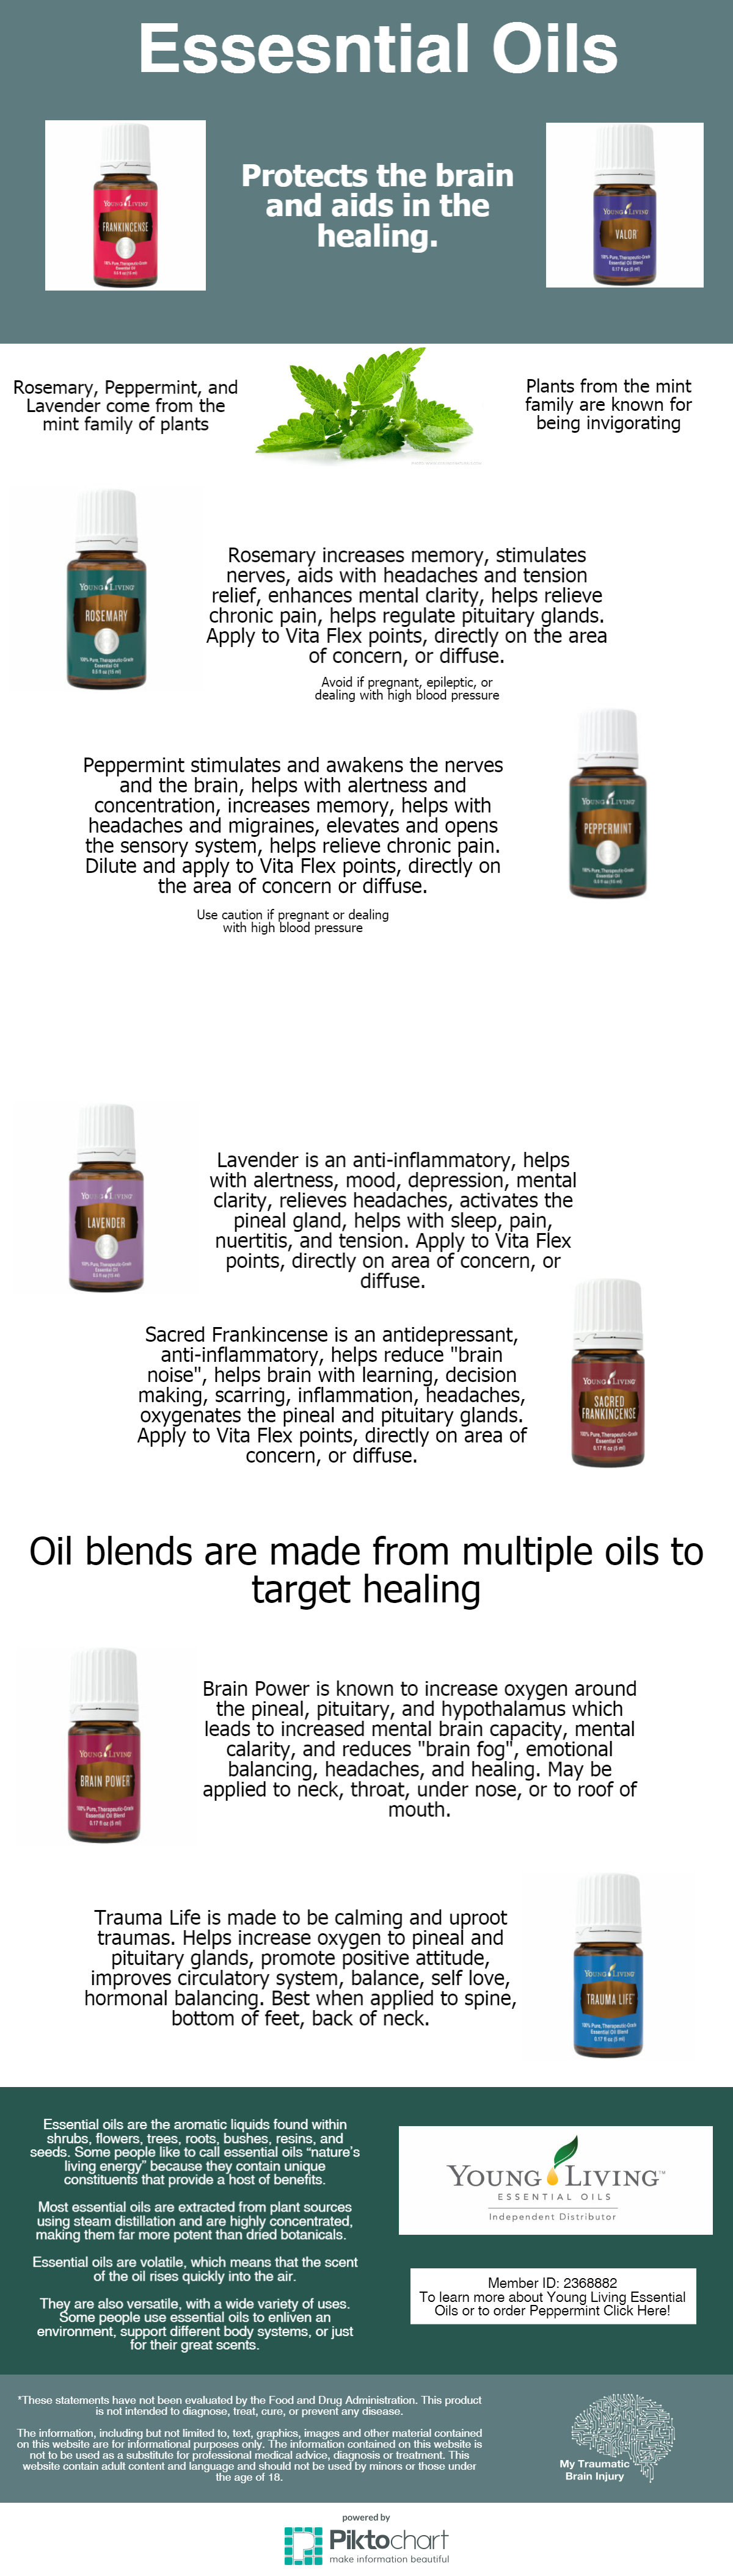 Pin By My Traumatic Brain Injury On Essential Oils For Concussions